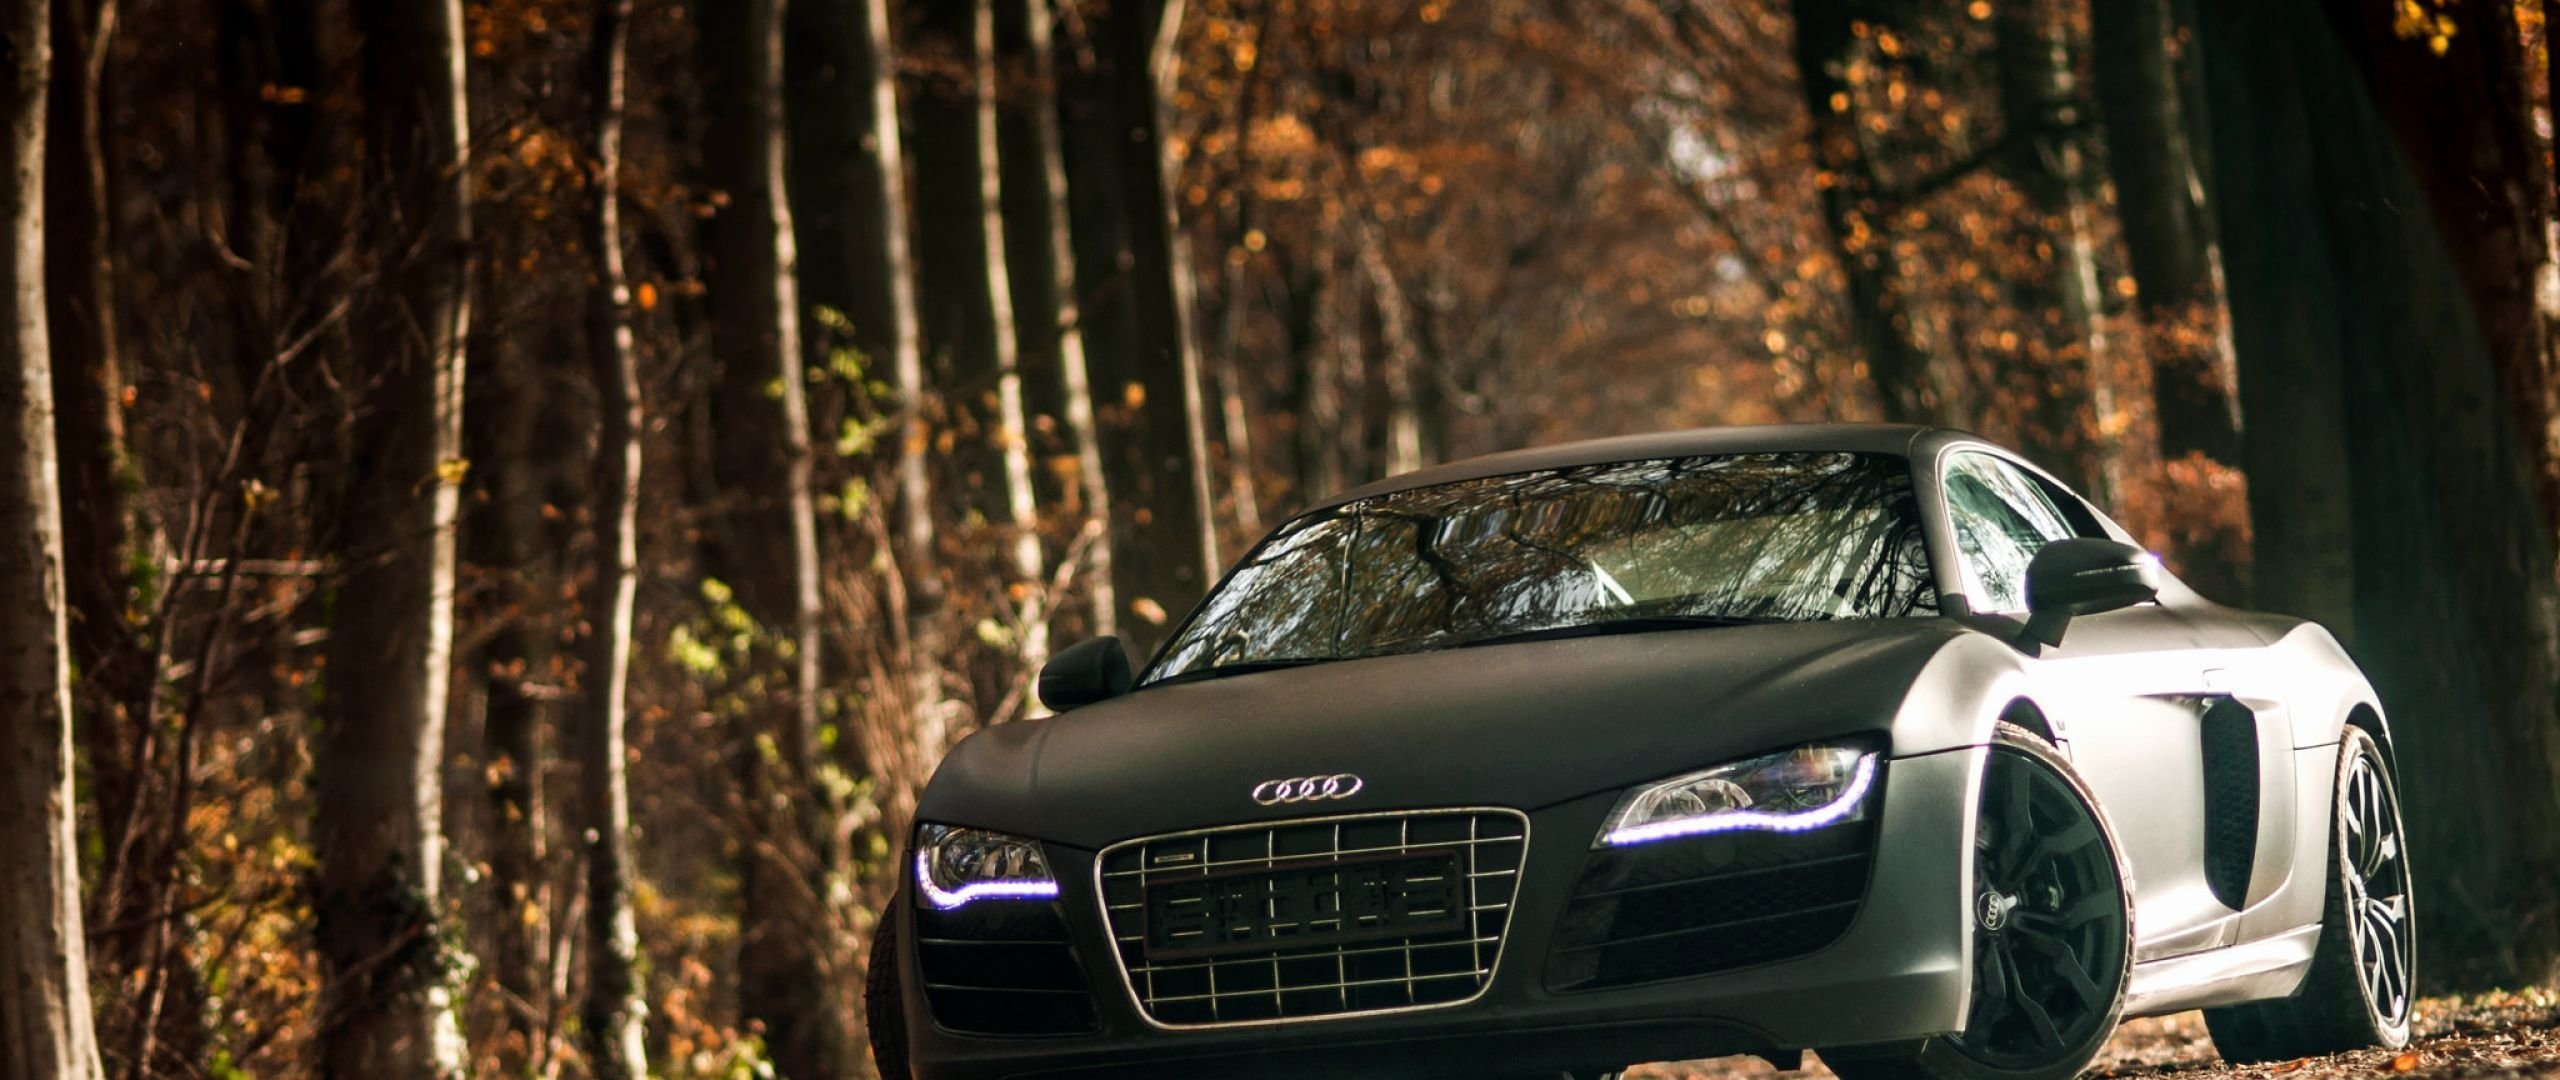 Latest Project Audi V8 On Road Car Pictures Images Free Download